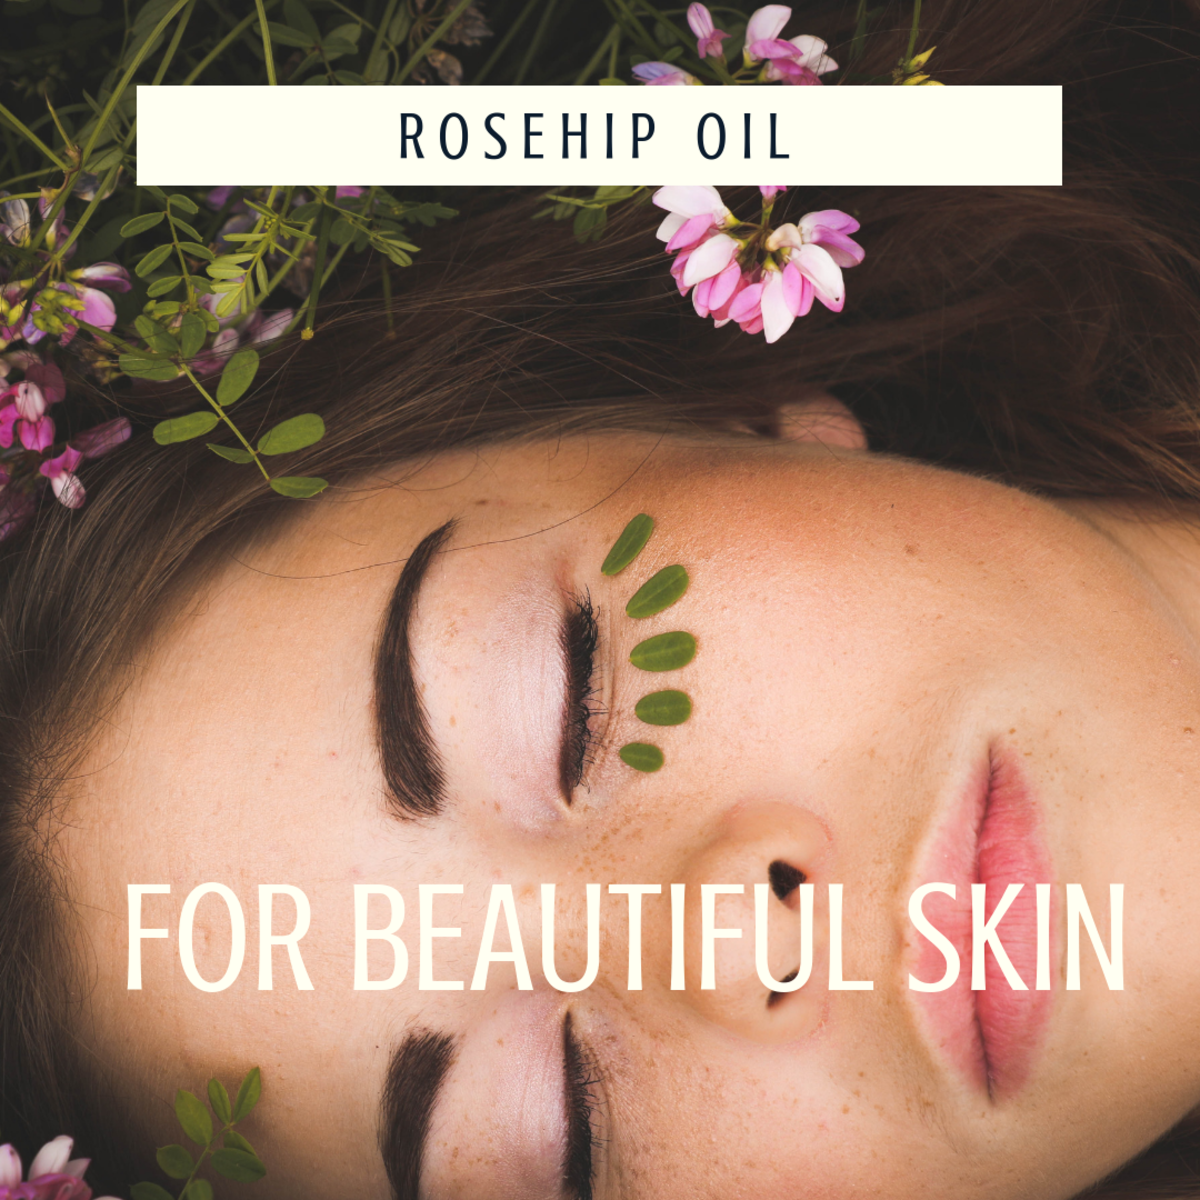 Flawless Skin: Rosehip Oil Benefits for Acne Scars, Anti-Aging, and Youthful Skin